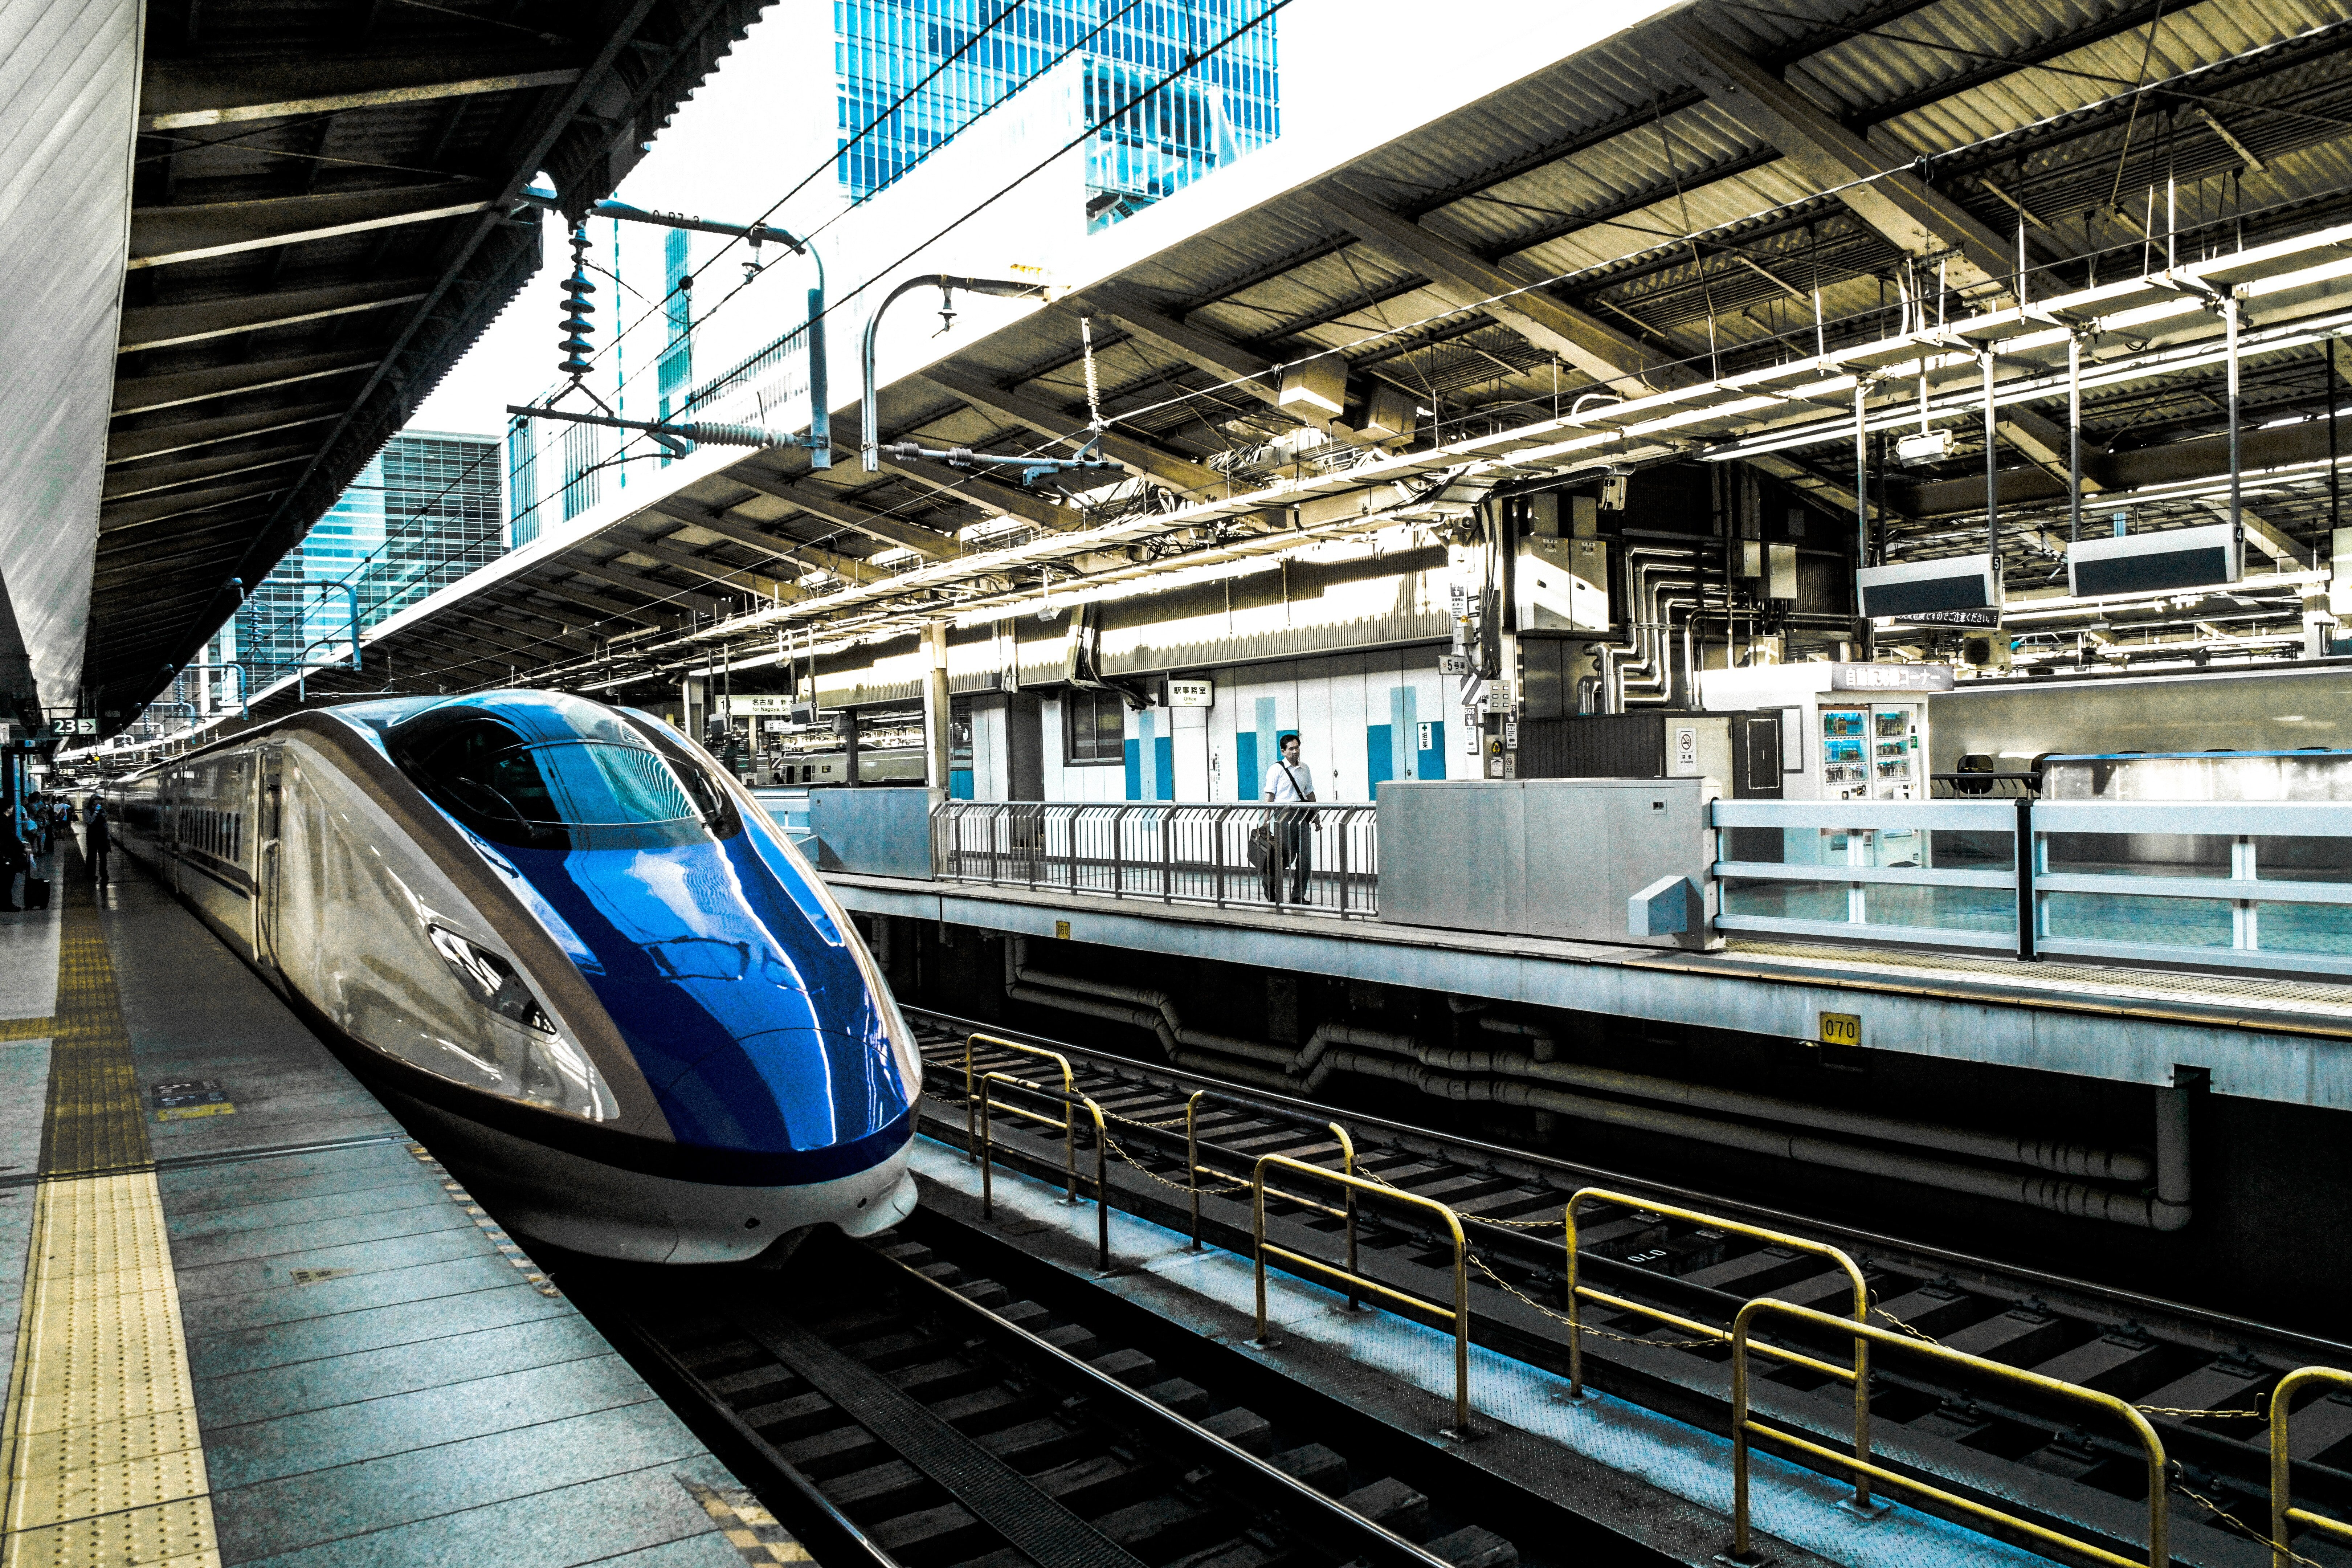 Application Spotlight: 3D Printing in the Rail Industry